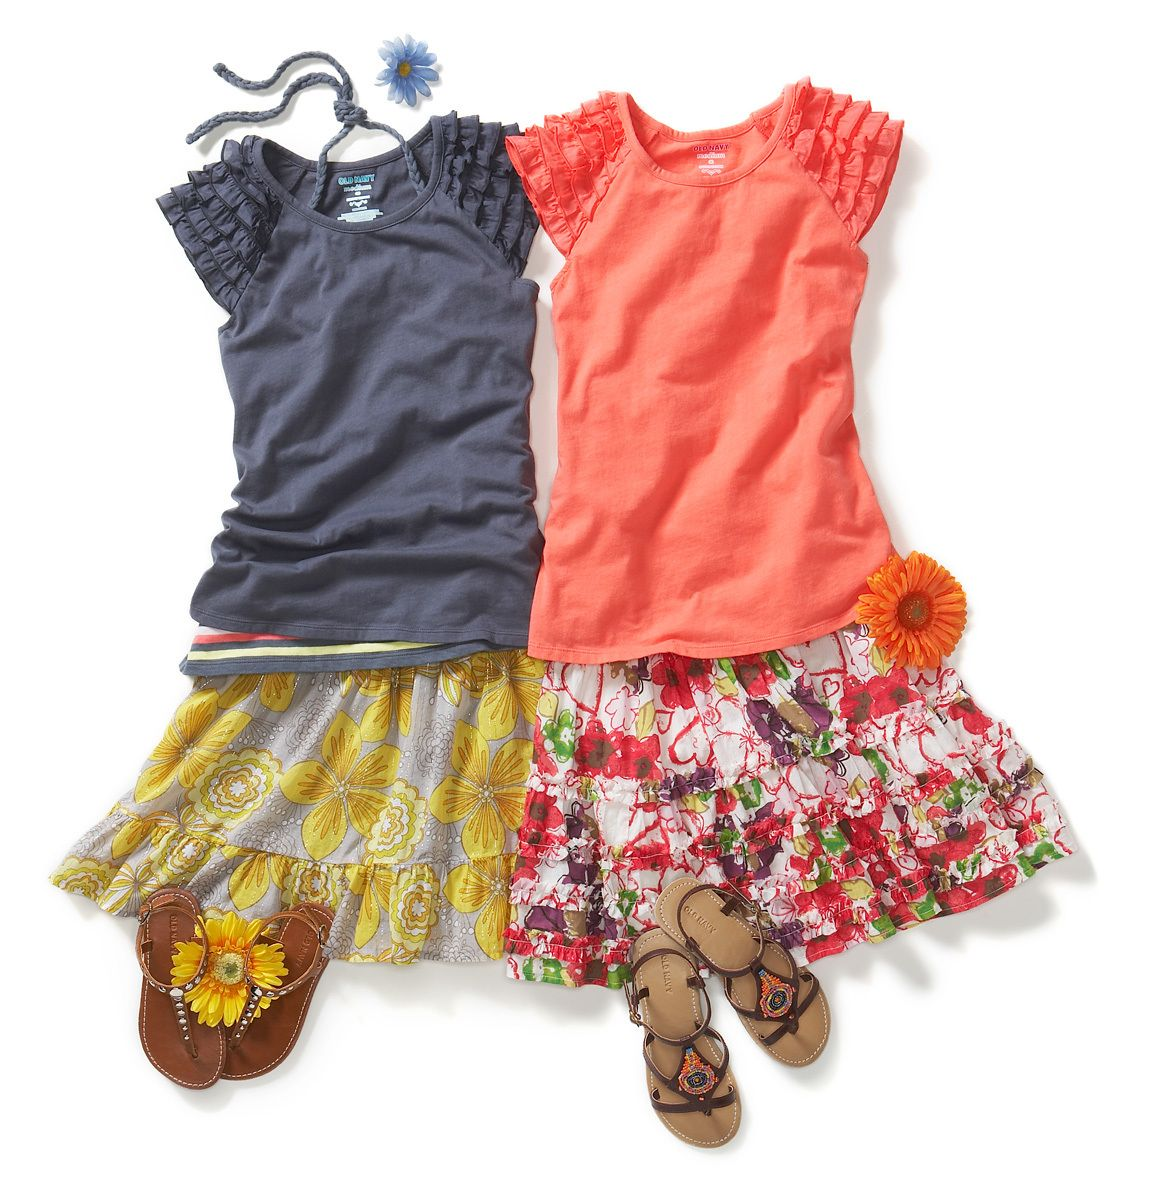 1old_navy_skirt_outfits_with_flowers.jpg